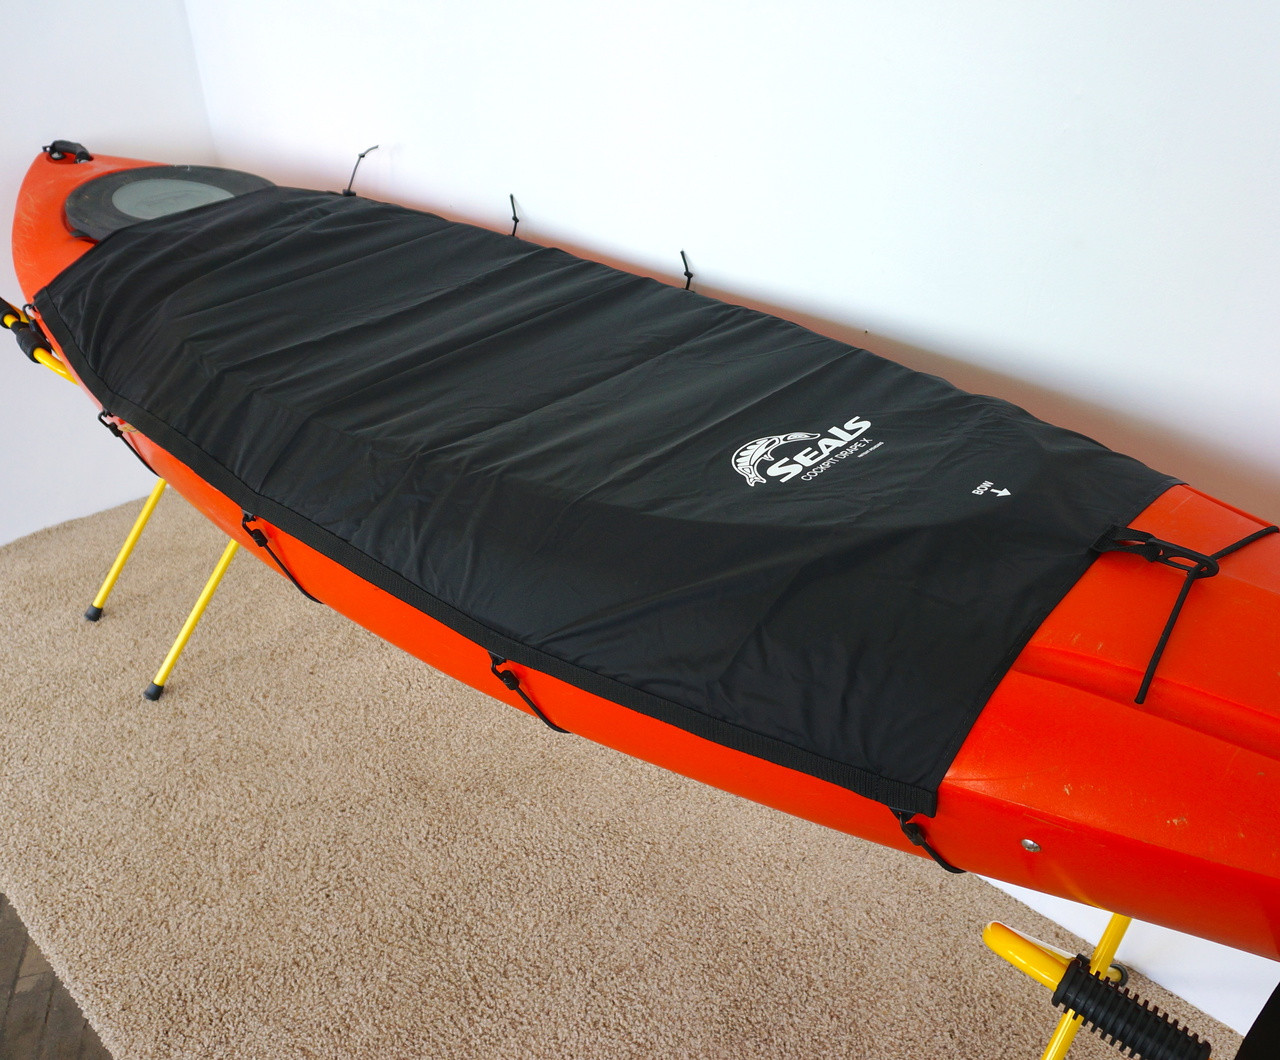 cockpit cover for recreational SOT kayaks